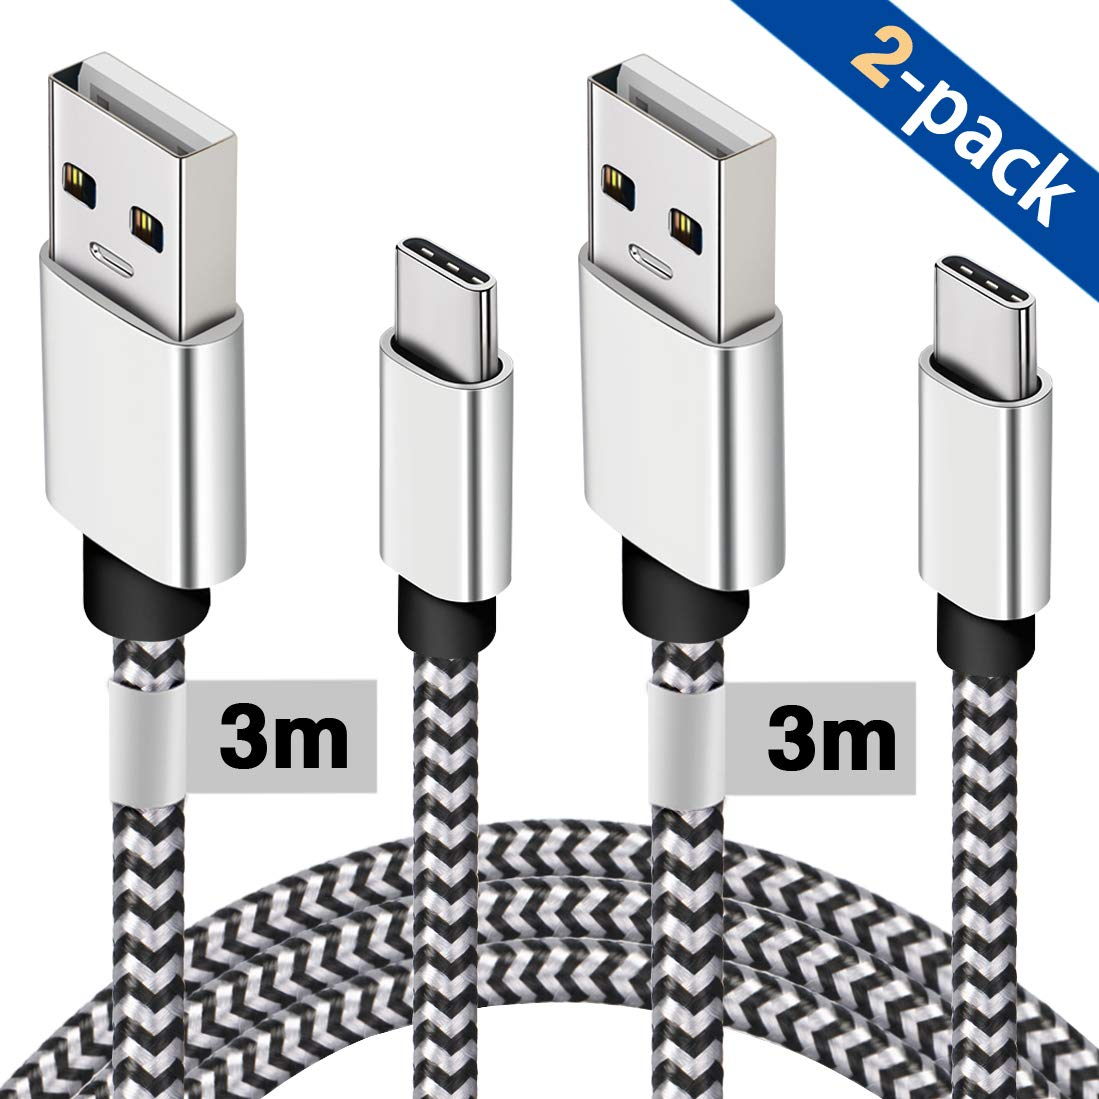 USB Type C Cable, [2 Pack 3M] Certified USB C Cable Extra Long Durable Nylon Braided Charging USB Type C Data Sync Cord Compatible For Samsung Galaxy S9/S8+ Note 8, Huawei P9/P10, Google Pixel XLand More kisgo